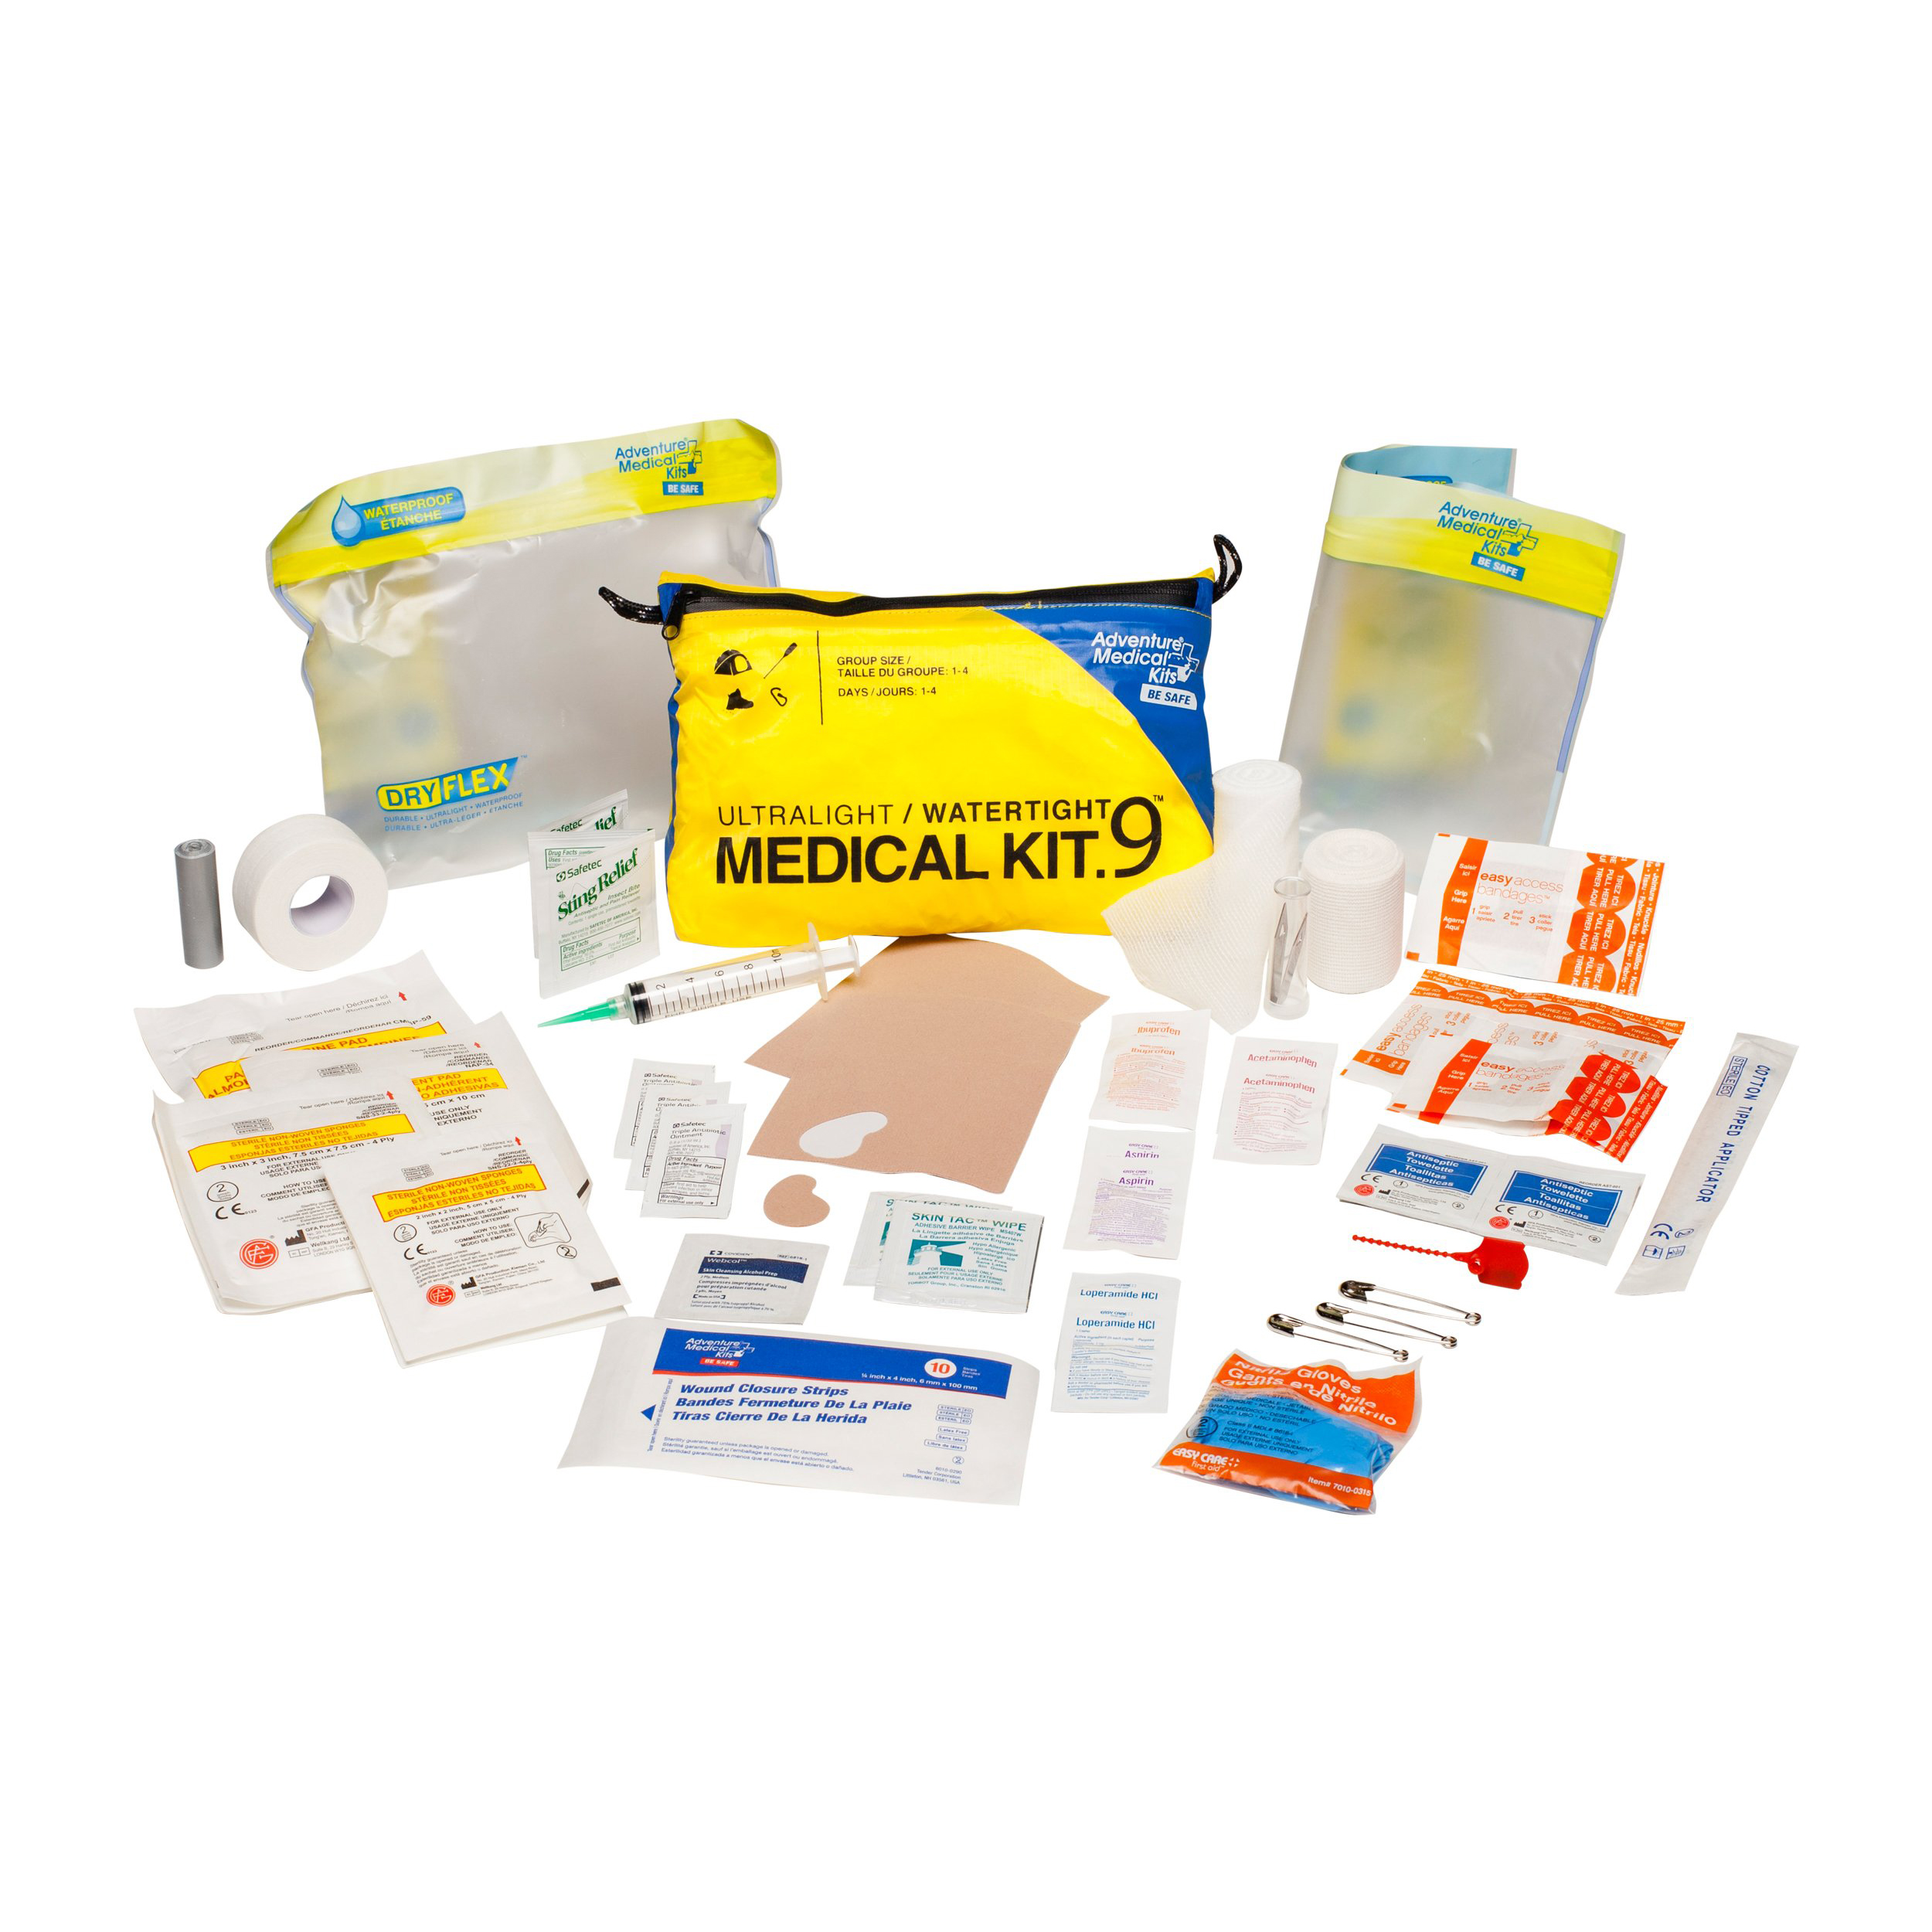 Adventure Medical Kits Ultralight and Watertight Medical Kit .9